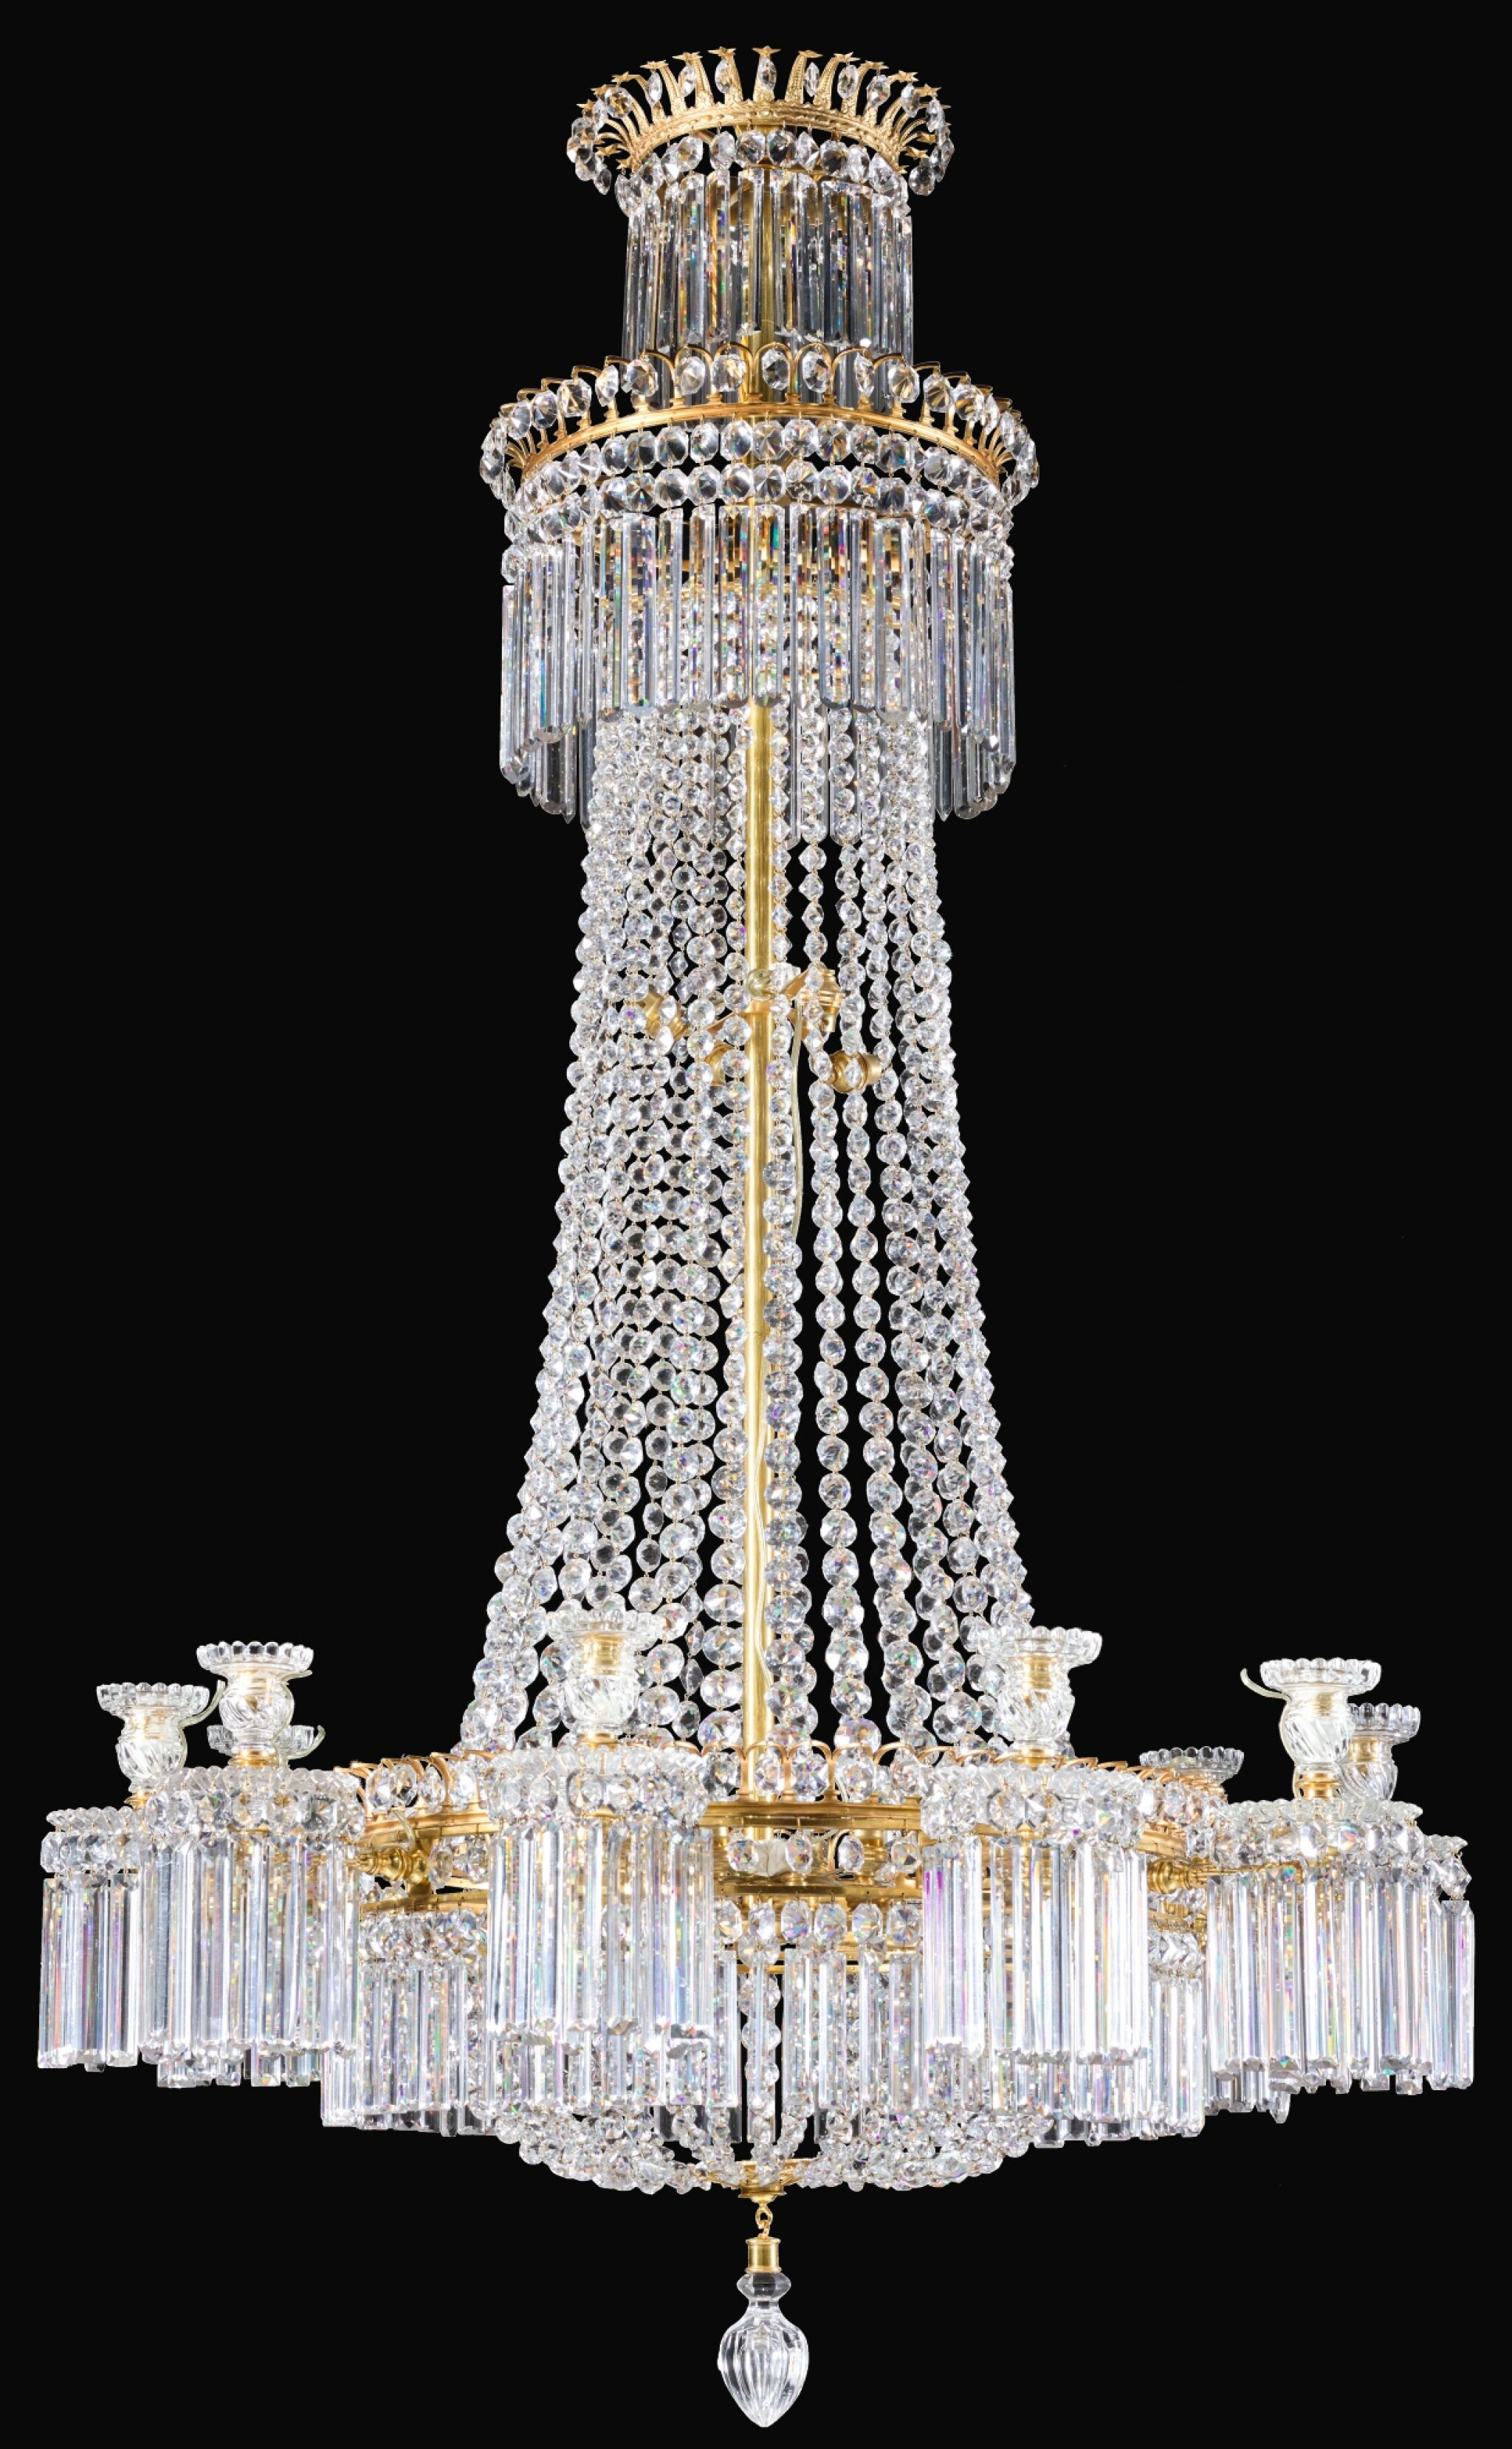 View full screen - View 1 of Lot 22. A REGENCY GILT-BRONZE AND CUT-GLASS TEN-LIGHT CHANDELIER, CIRCA 1810, ATTRIBUTED TO JOHN BLADES.